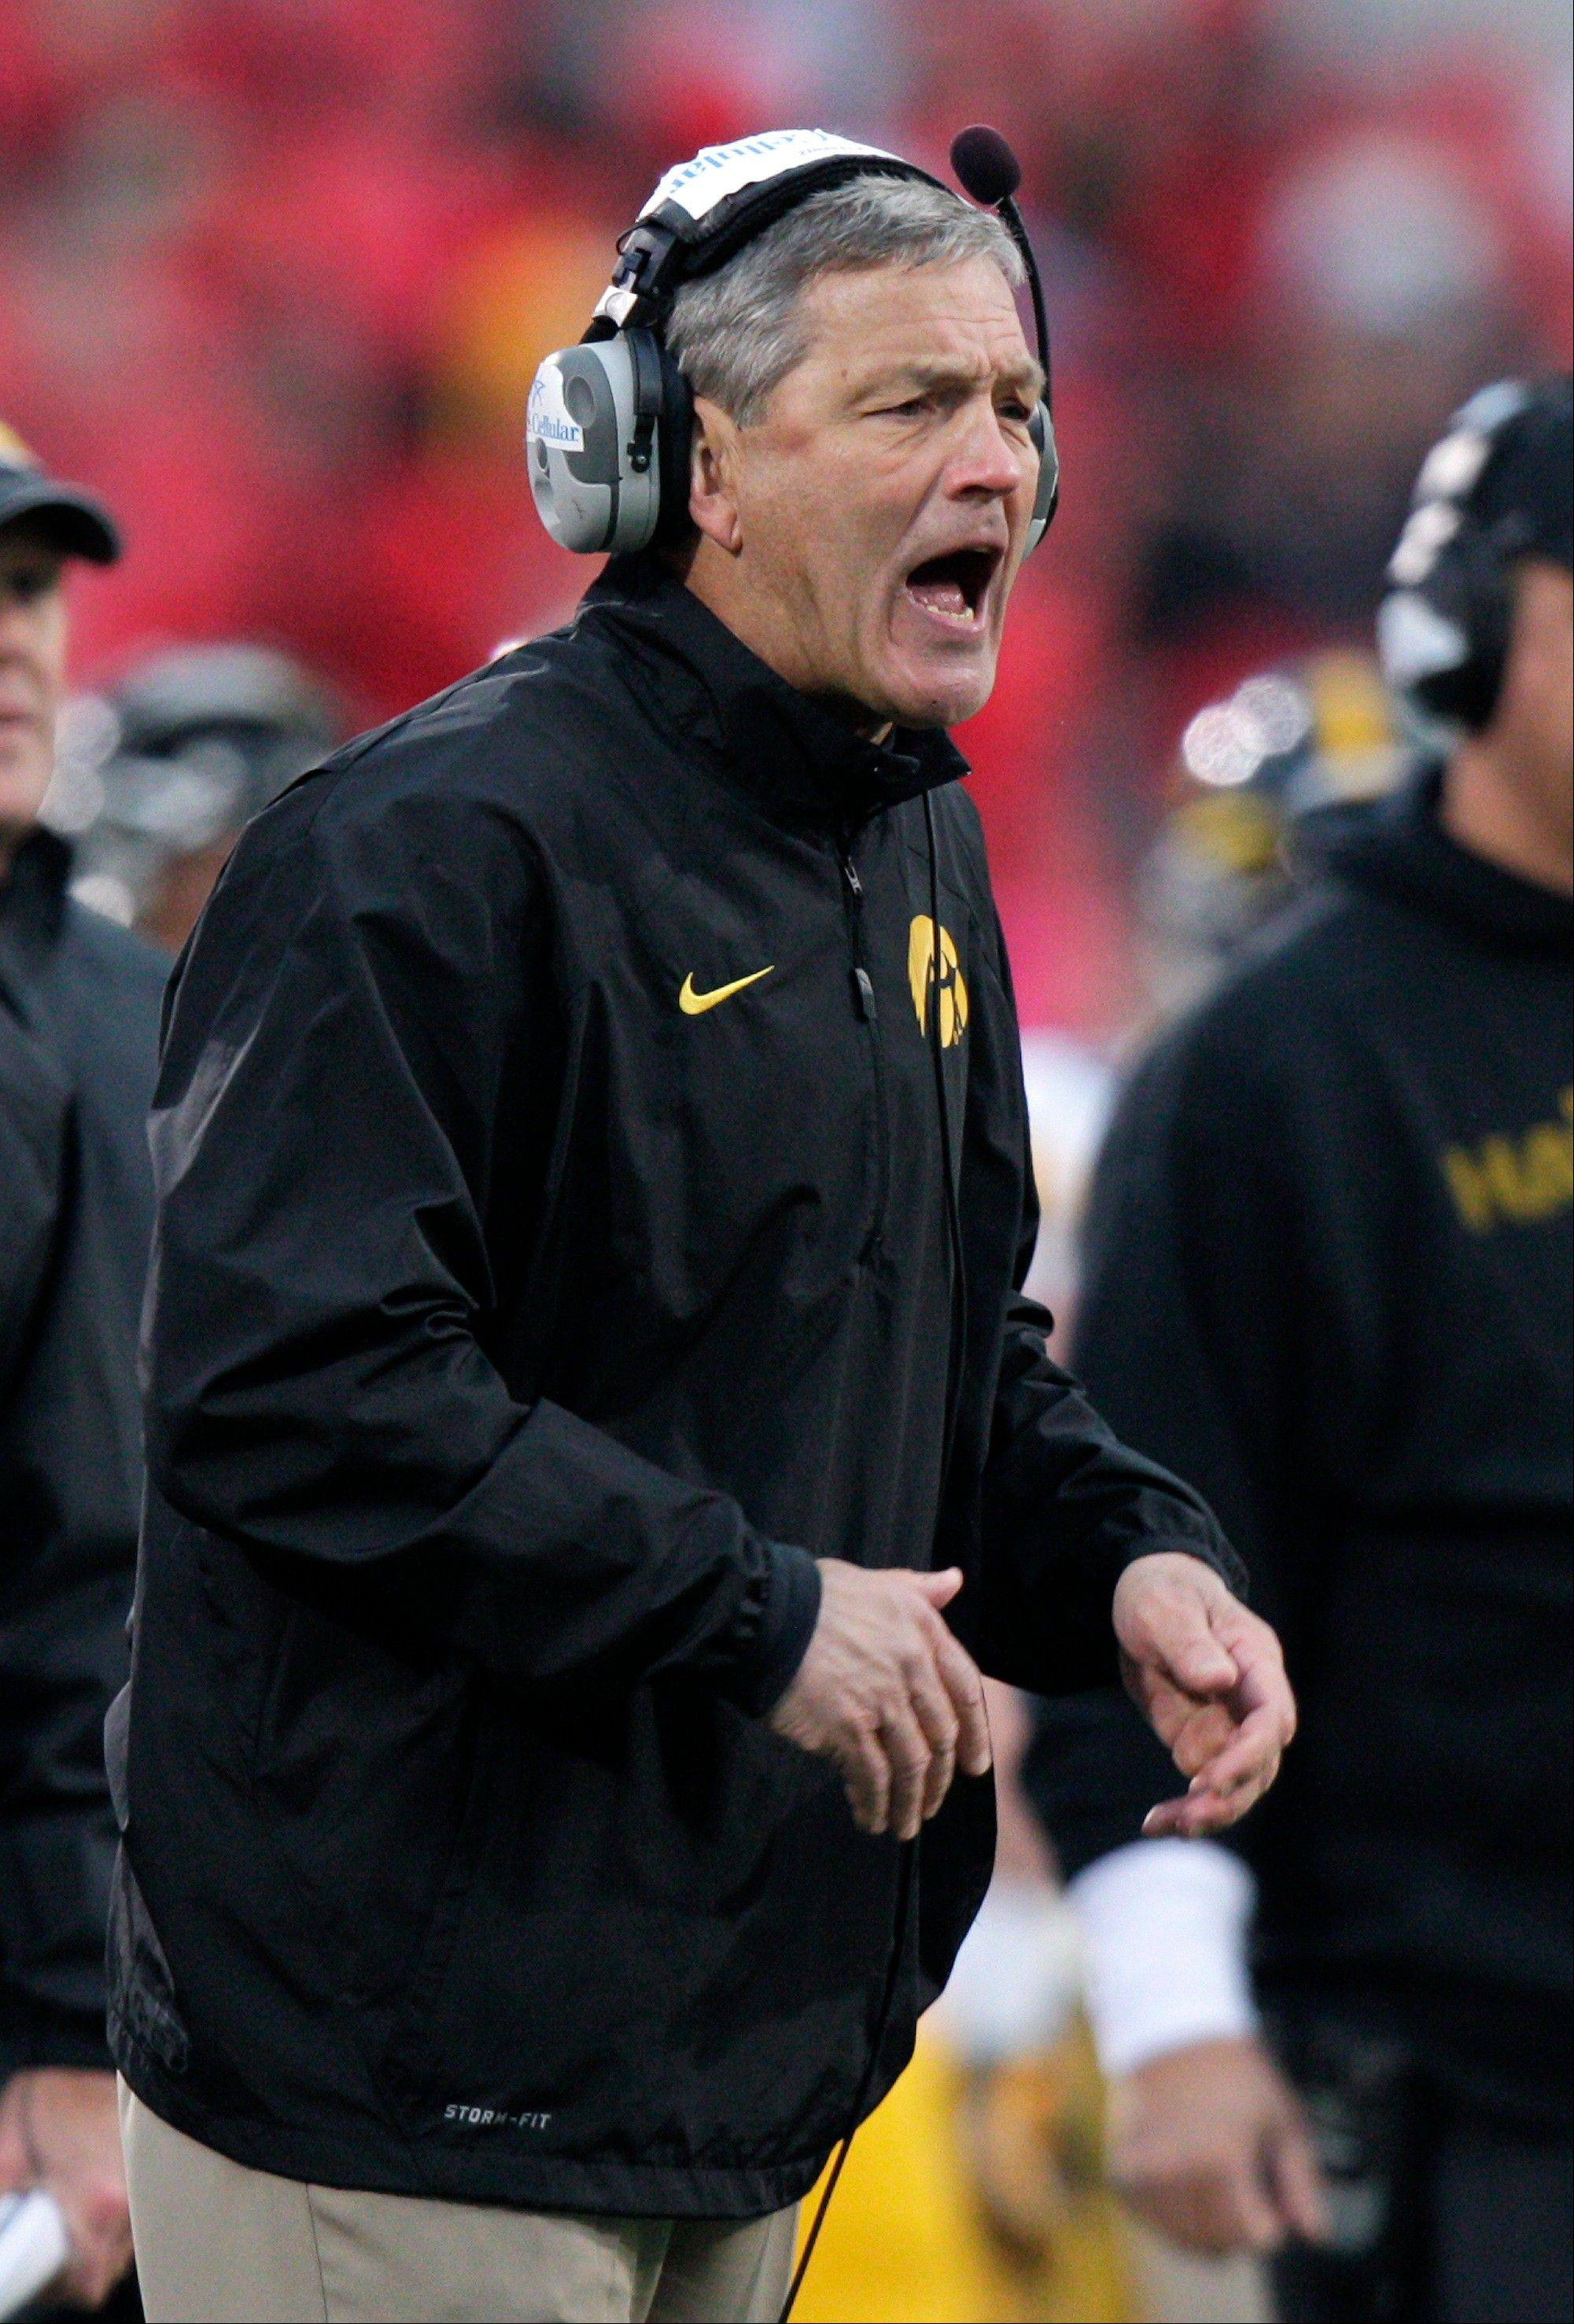 Head coach Kirk Ferentz and the Iowa Hawkeyes had their first bye on Oct. 12 and will have another Nov. 16.